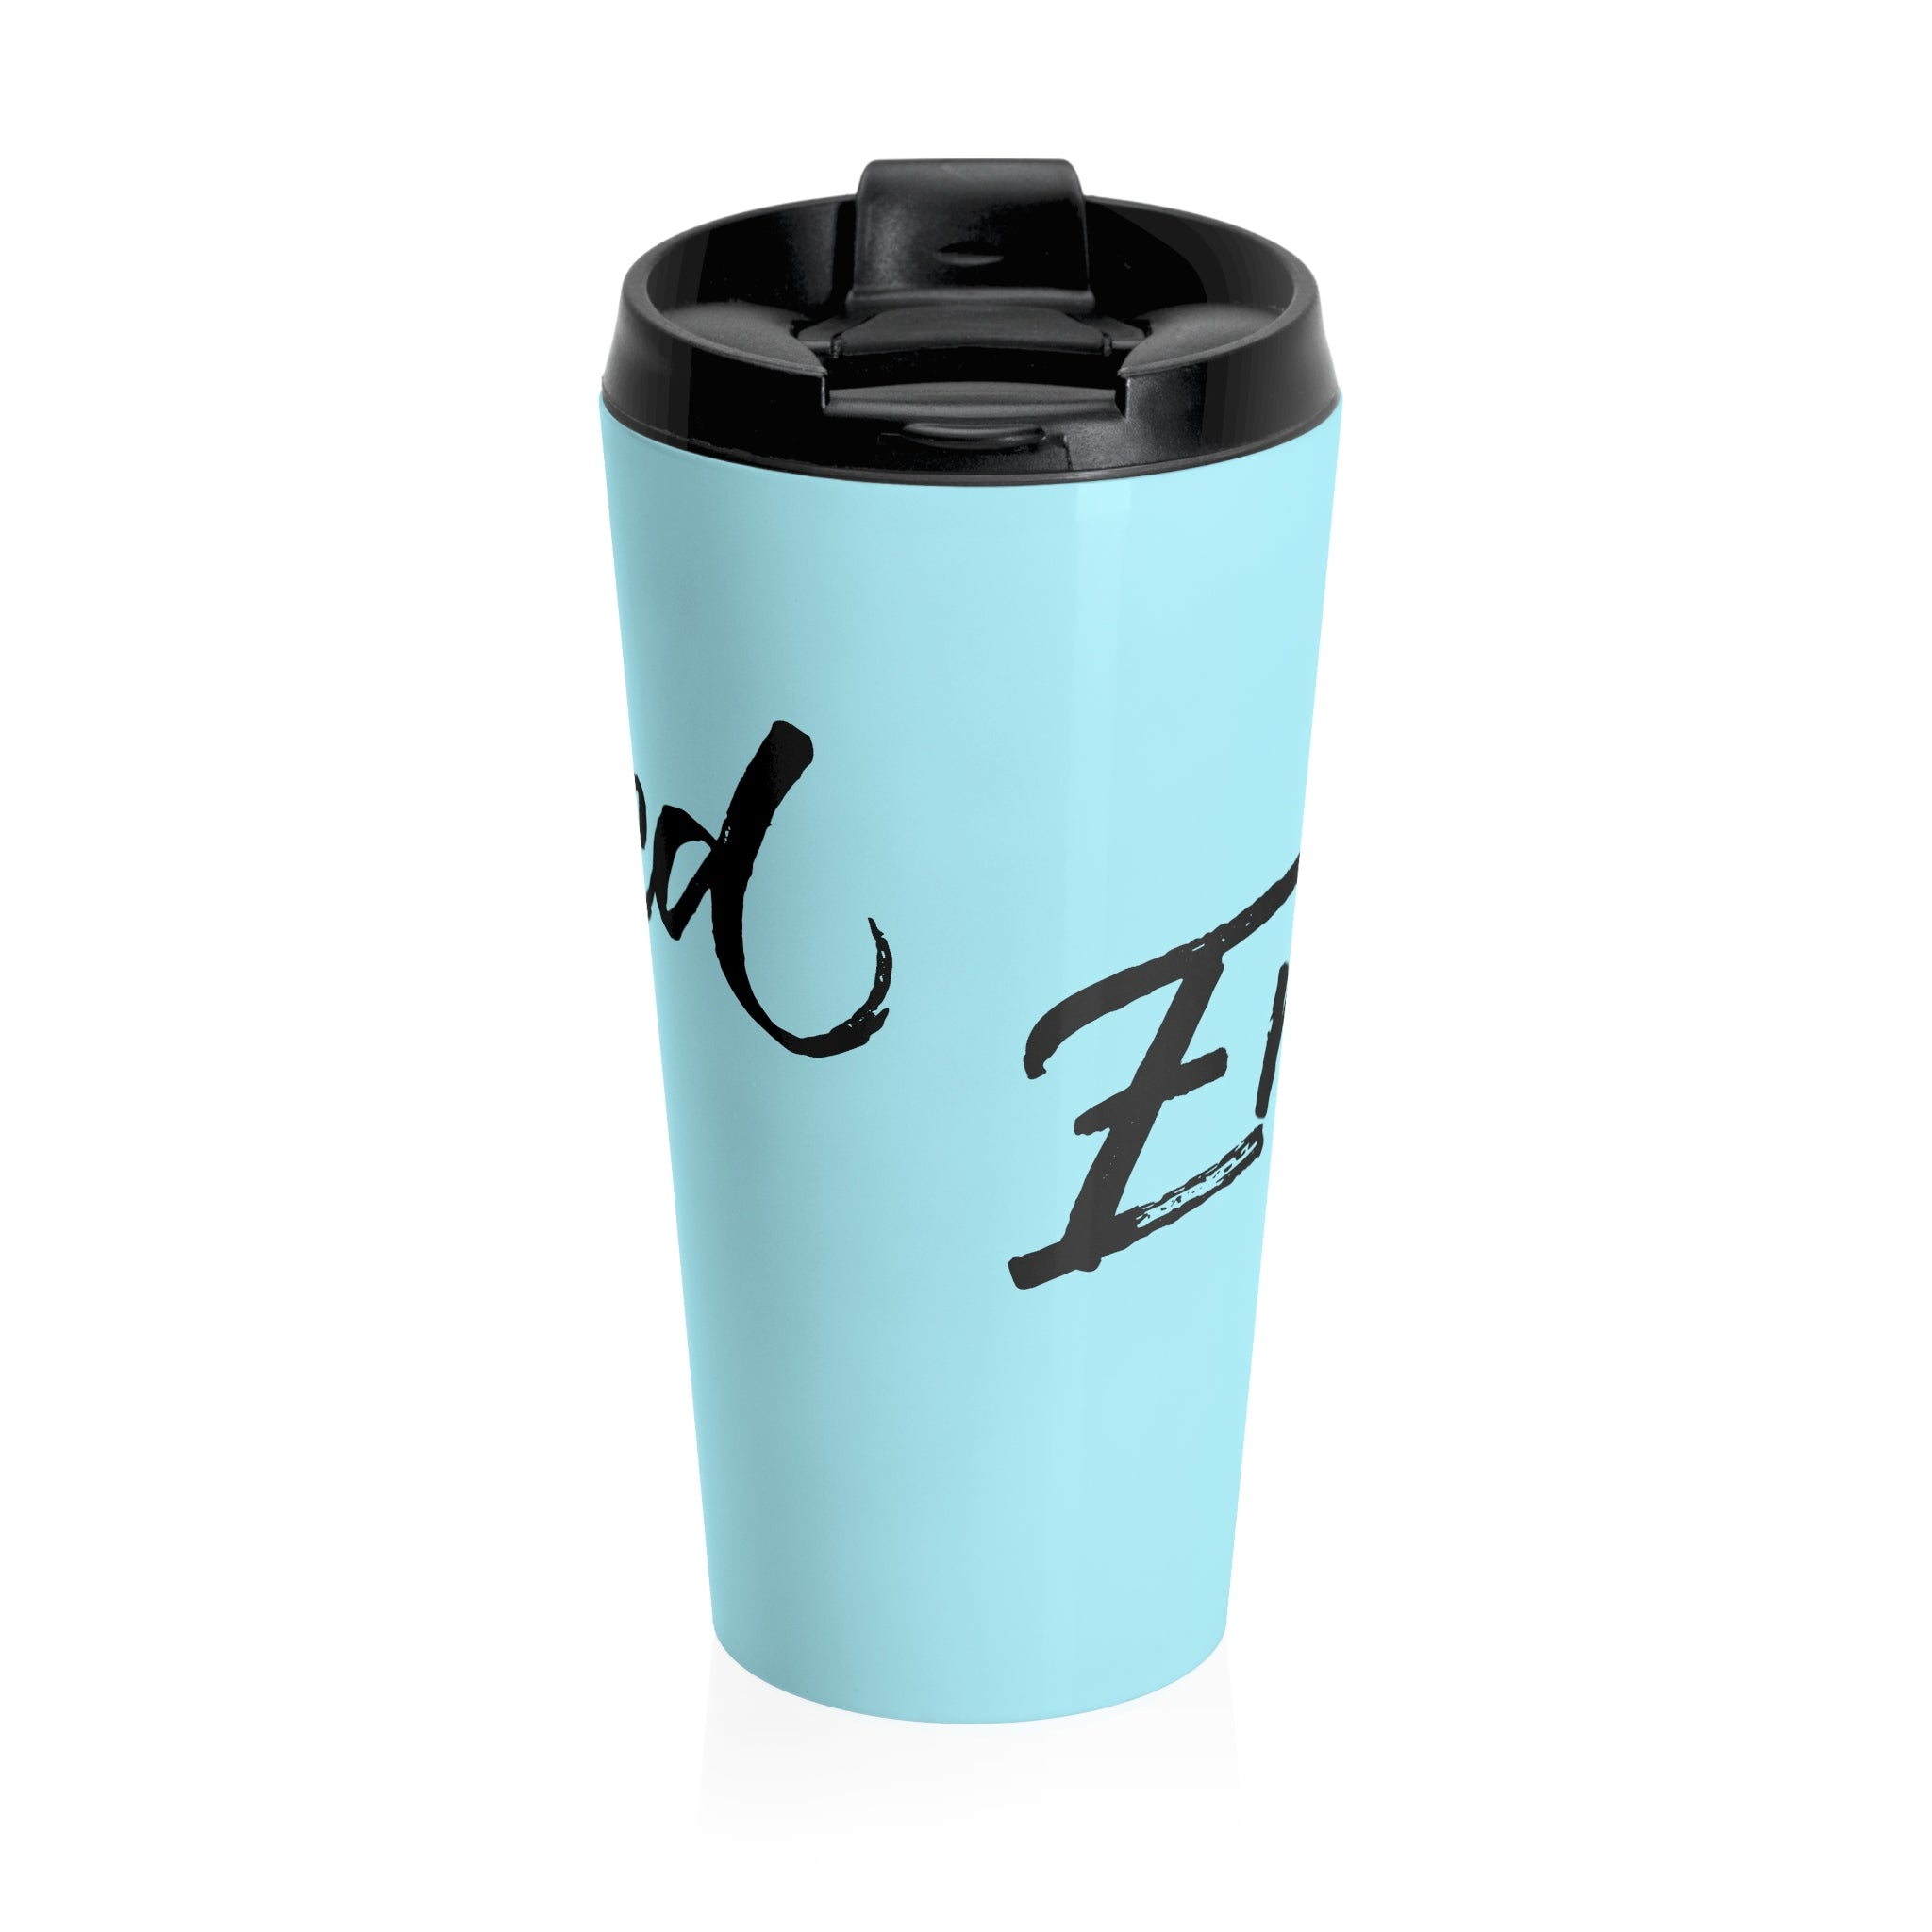 Empowered Stainless Steel Travel Mug